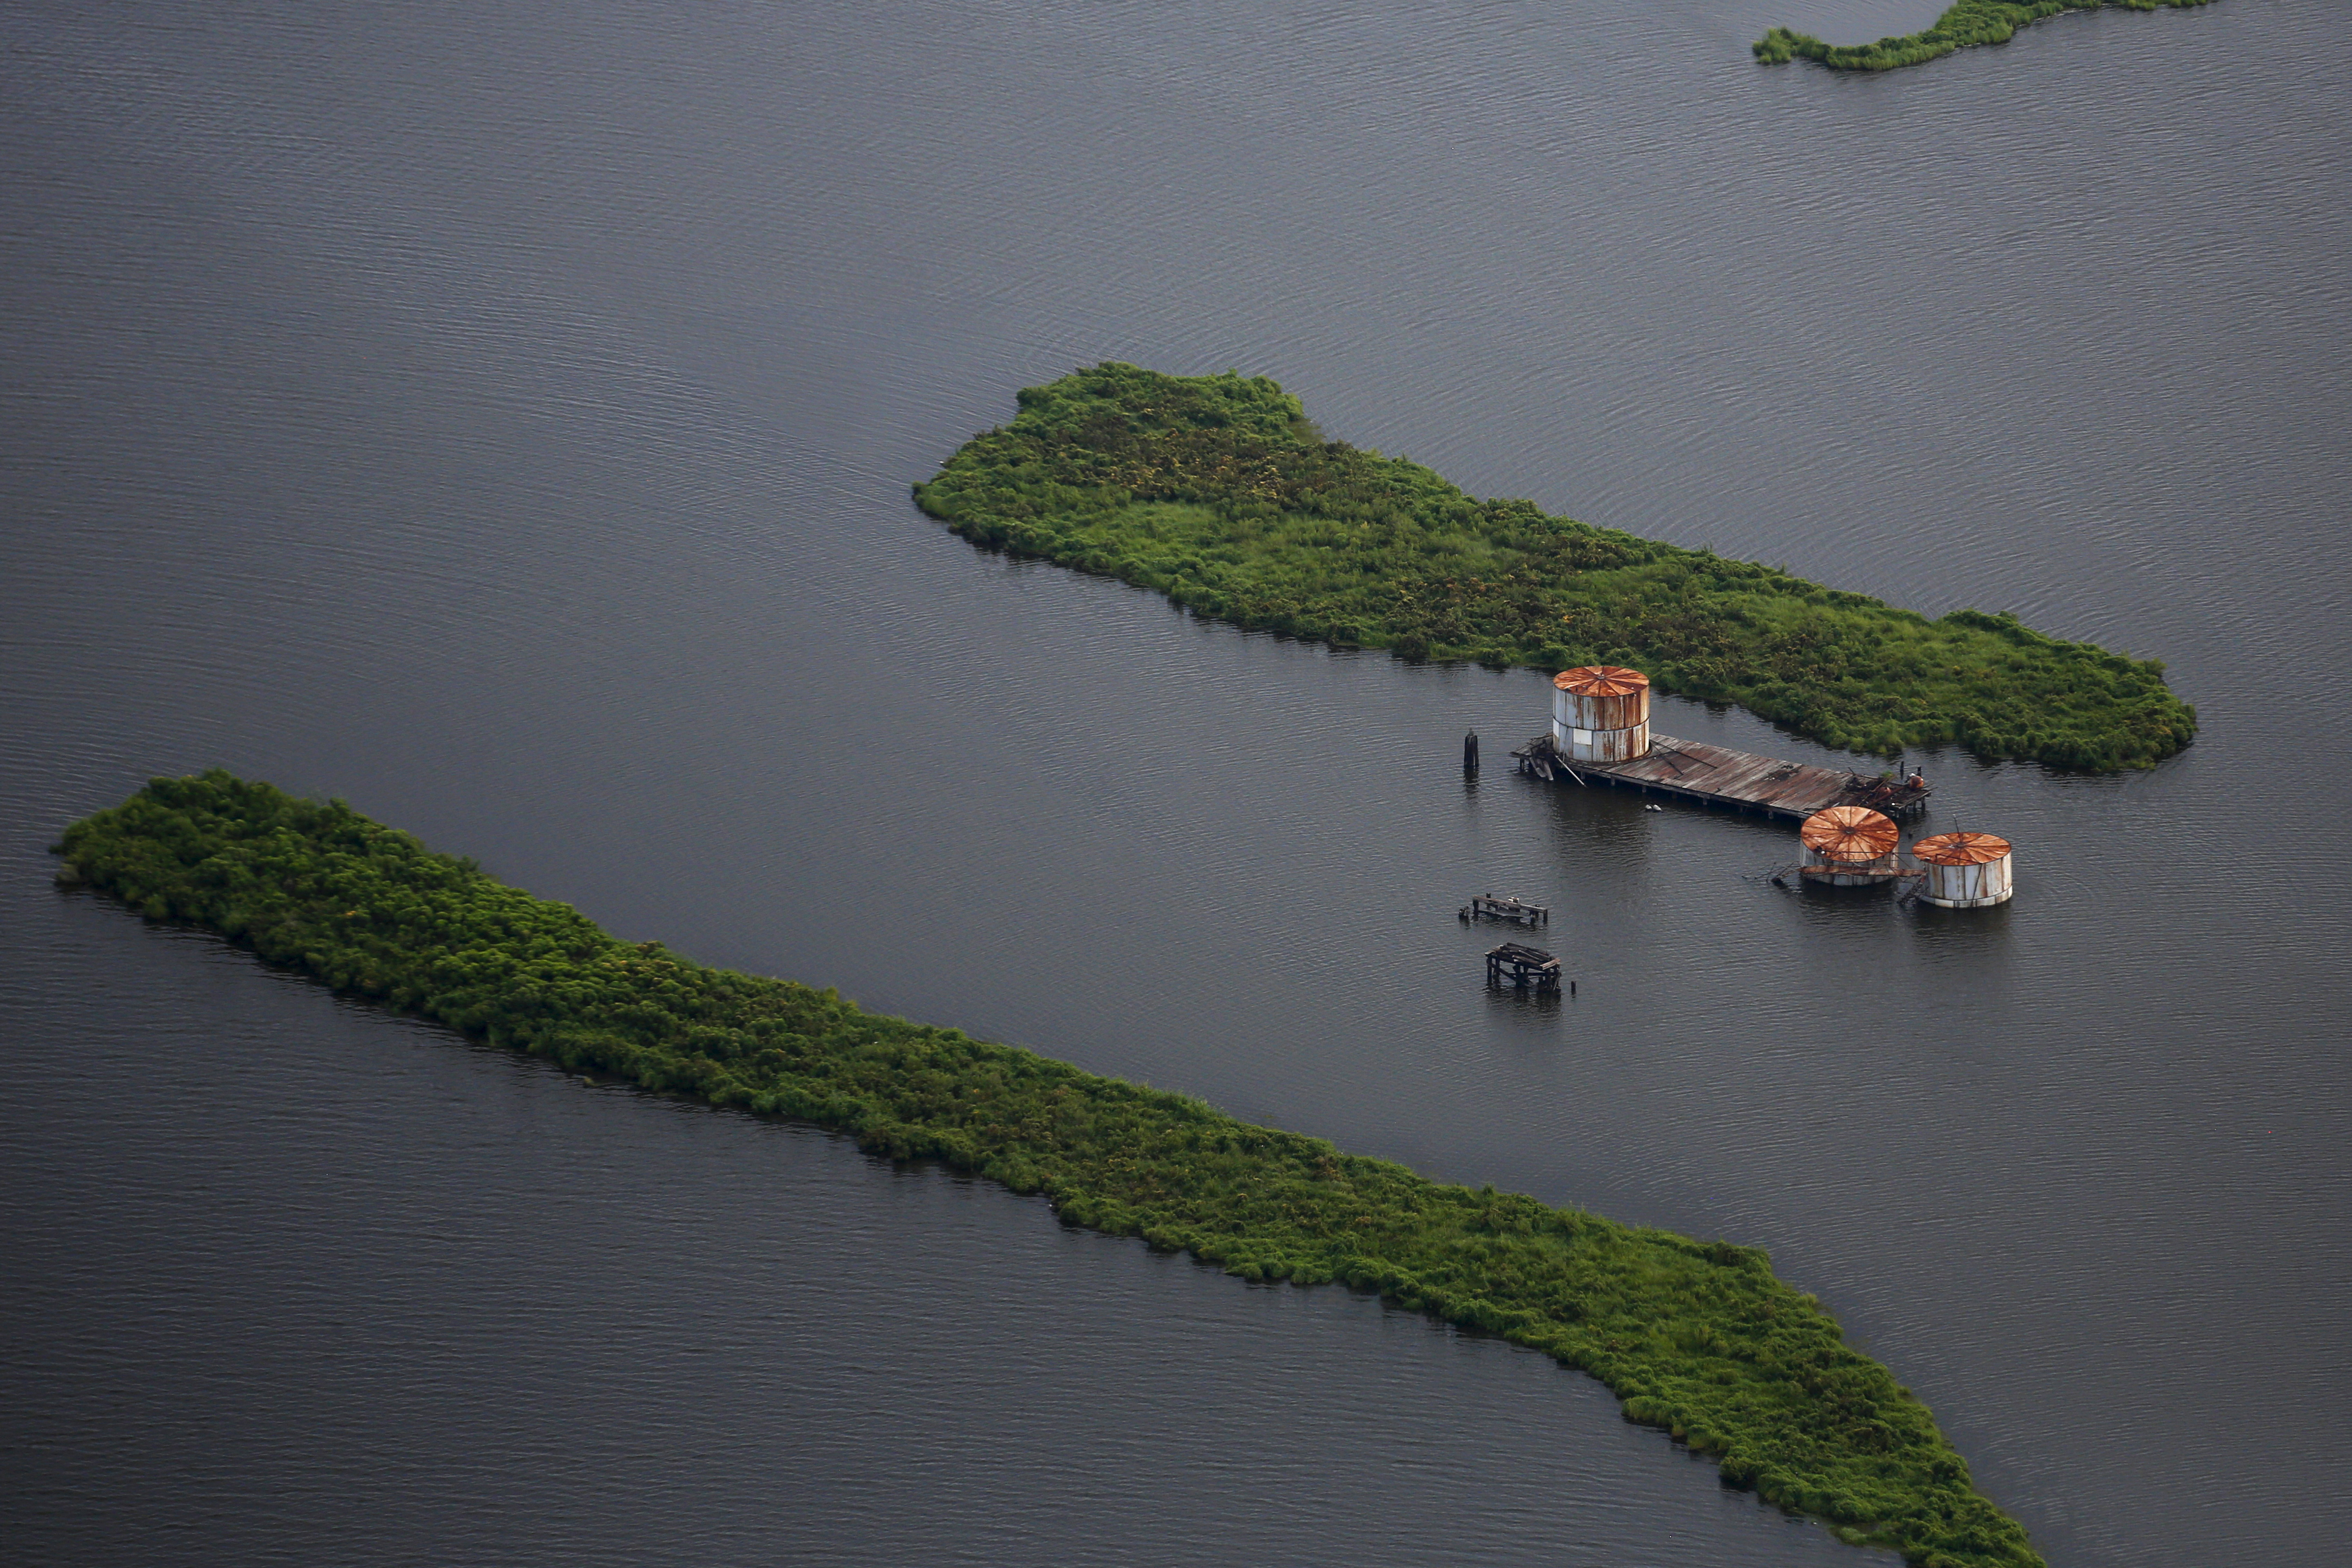 FILE - Old oil tanks are seen in an area affected by Hurricane Katrina on the Mississippi river delta, New Orleans, Louisiana, Aug. 19, 2015.